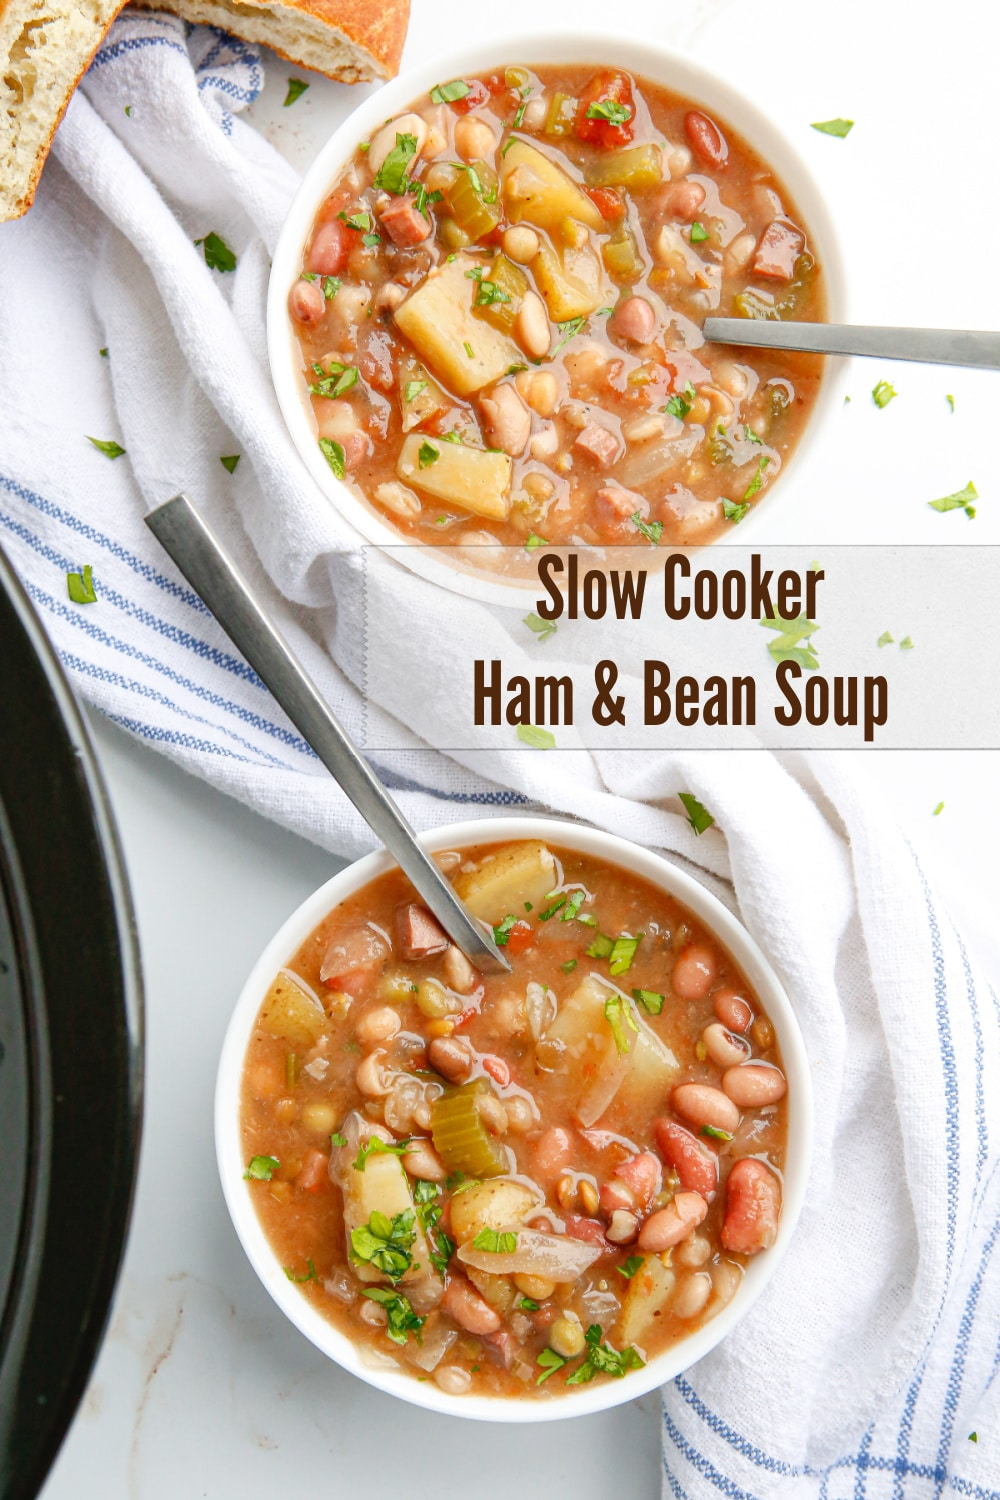 Delicious Slow Cooker Ham and Bean Soup, use up leftover ham or cube up a ham steak. The beans and potatoes give it a hearty texture and the seasonings add a slightly earthy flavor. Great with crusty bread. via @cmpollak1